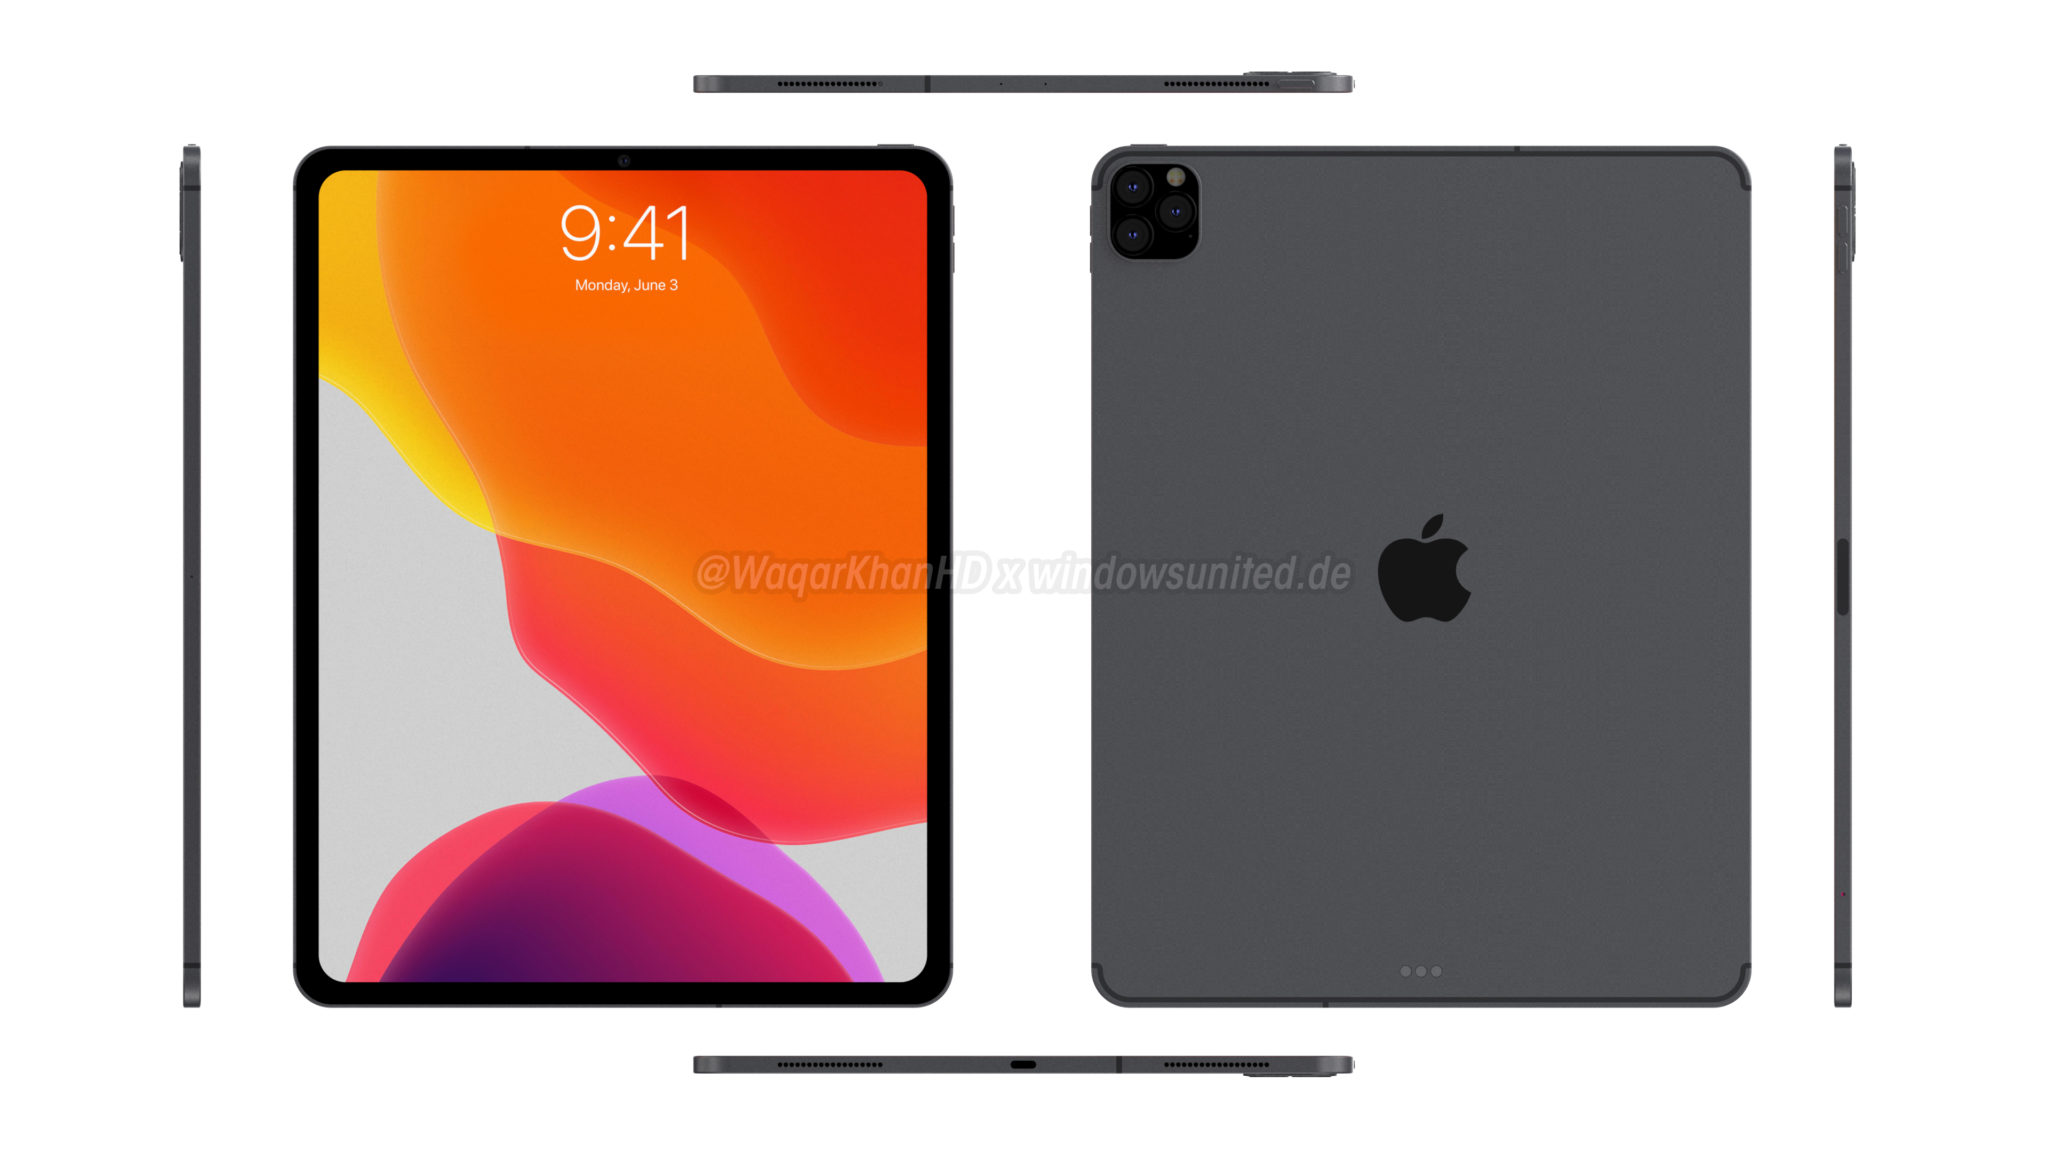 Apple iPhone 11 spec-sheet leaked days ahead of launch